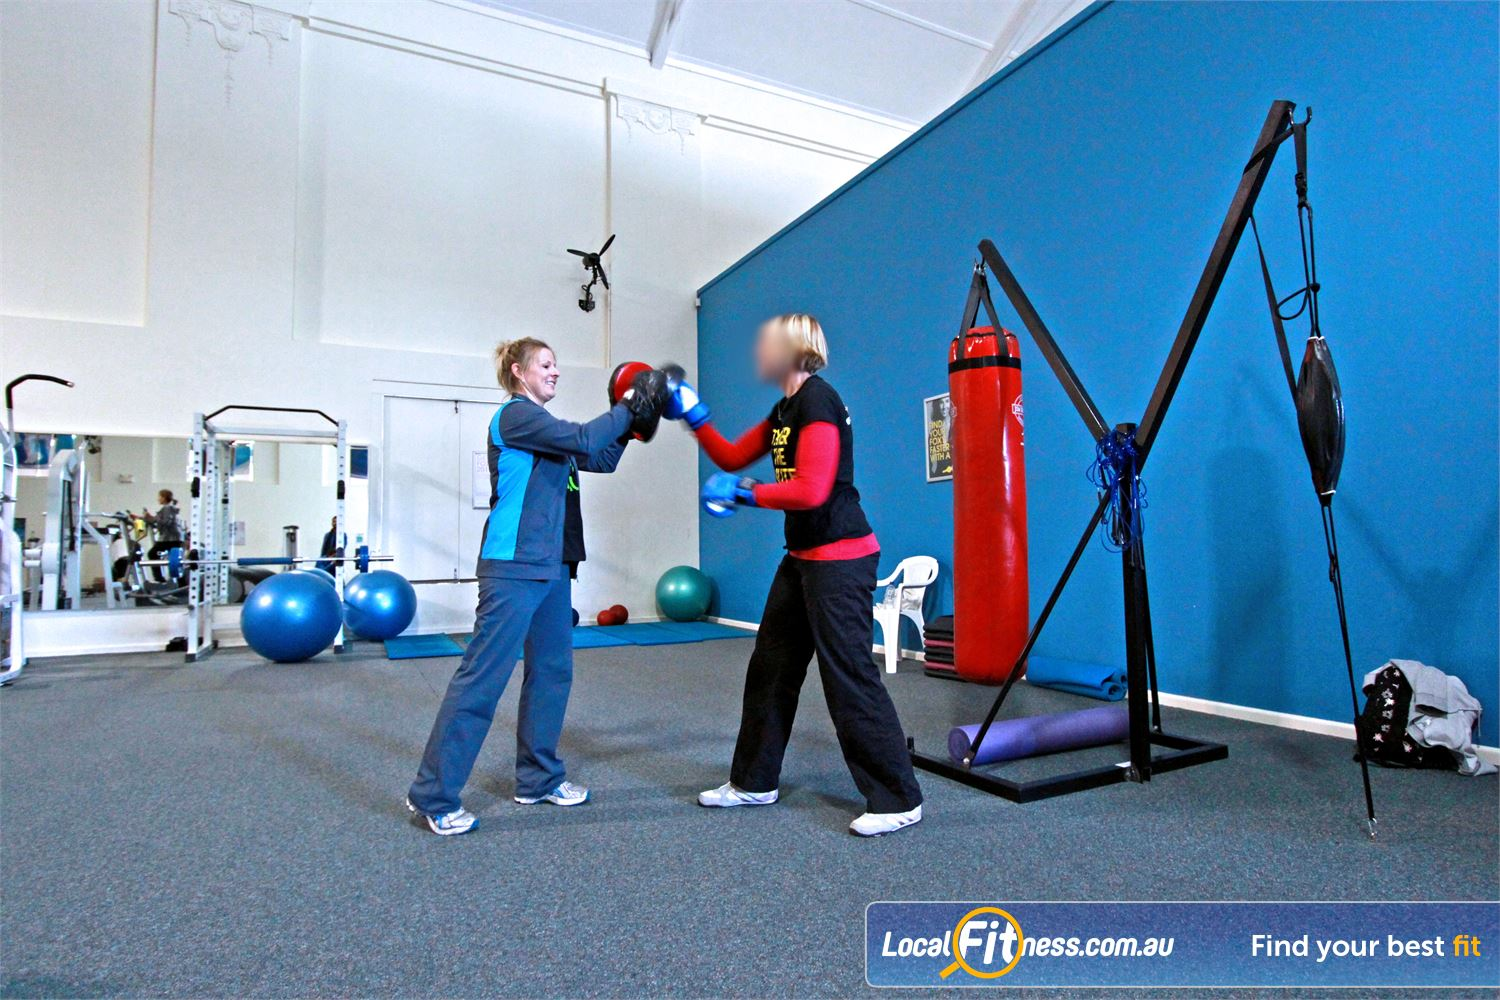 Fernwood Fitness Near Bellambi Fernwood Woonona gym instructors can incorporate cardio boxing into your session.